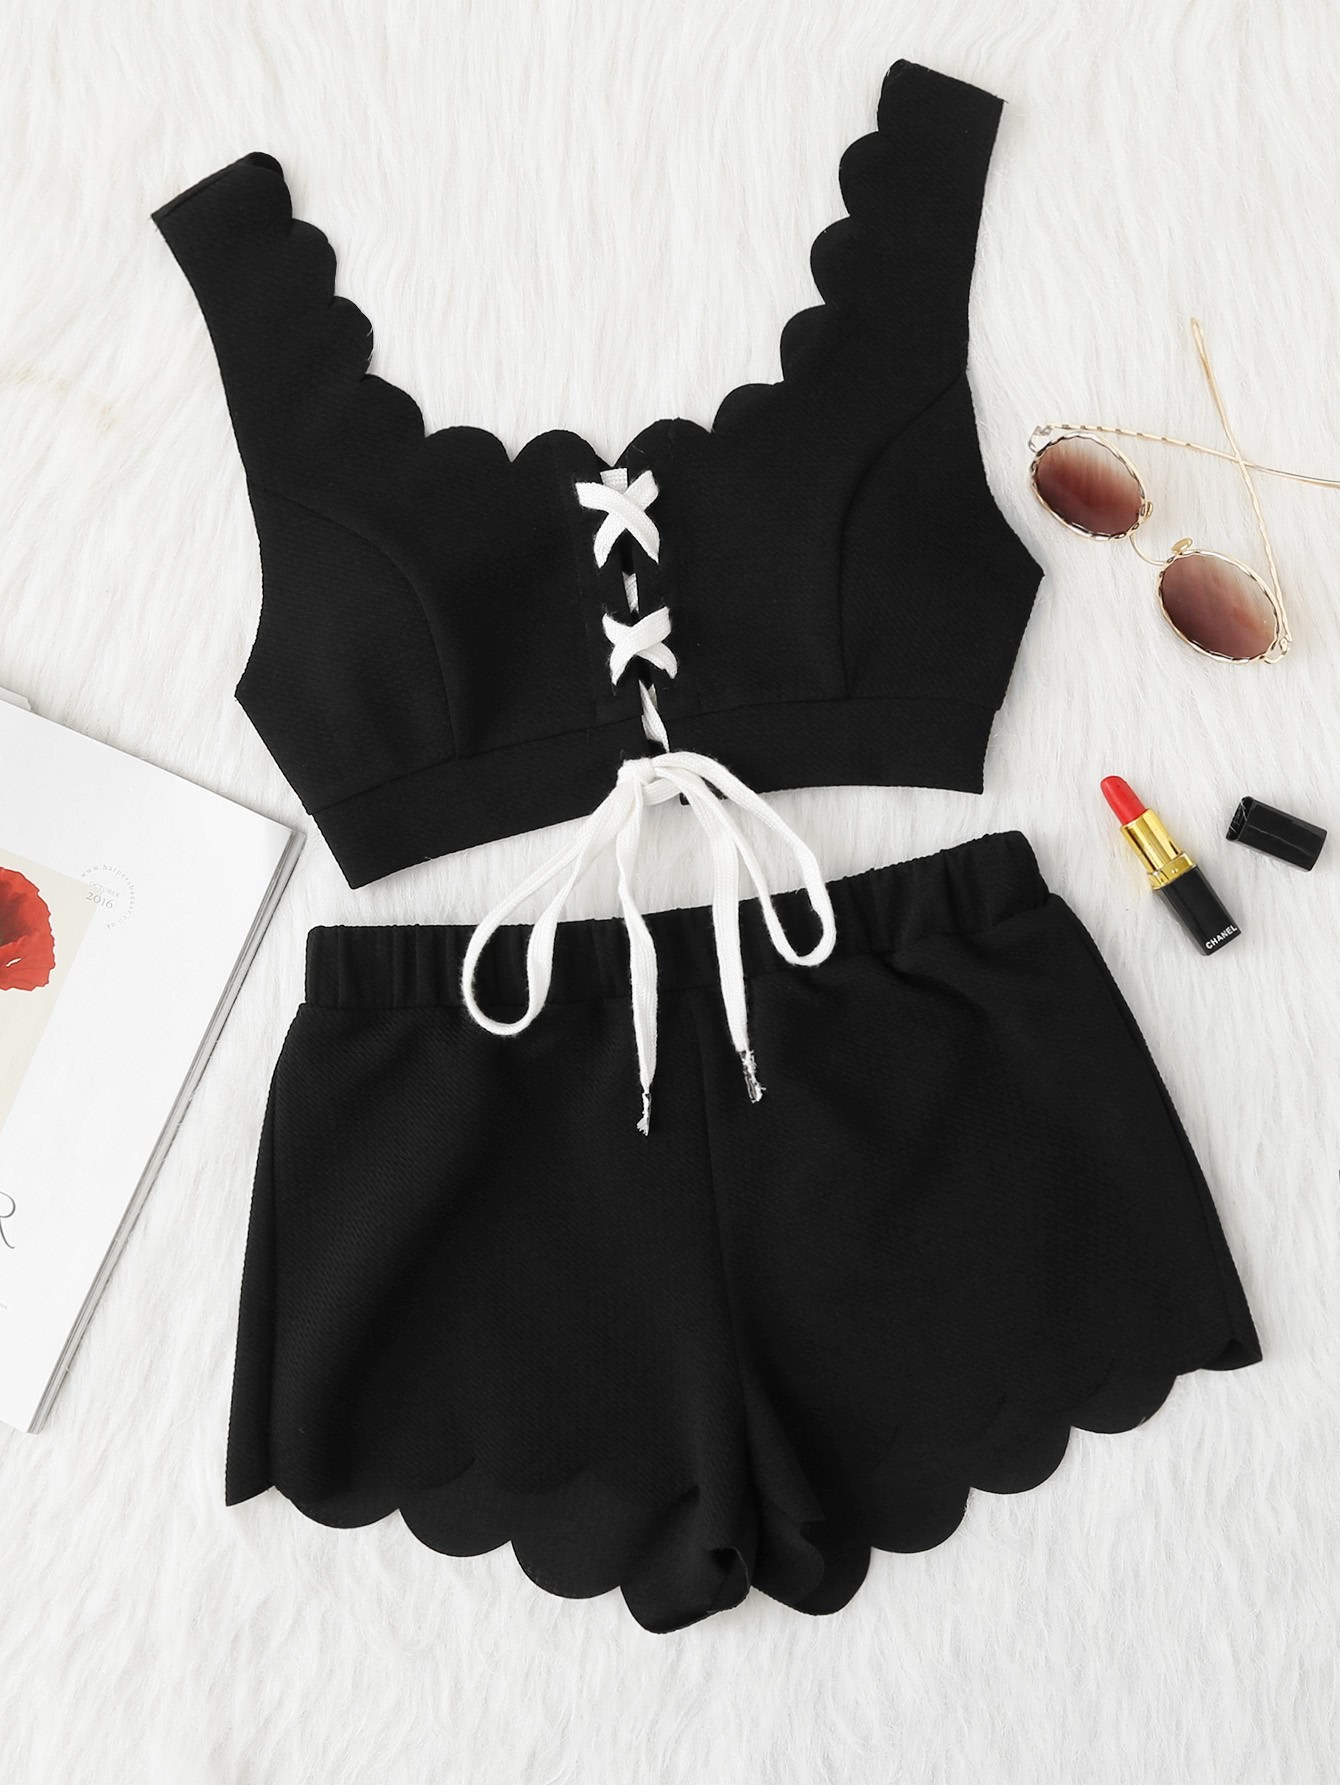 Lace Up Front Scalloped Trim Crop Top & Shorts PJ Set casual knitted lace up front crop top in black